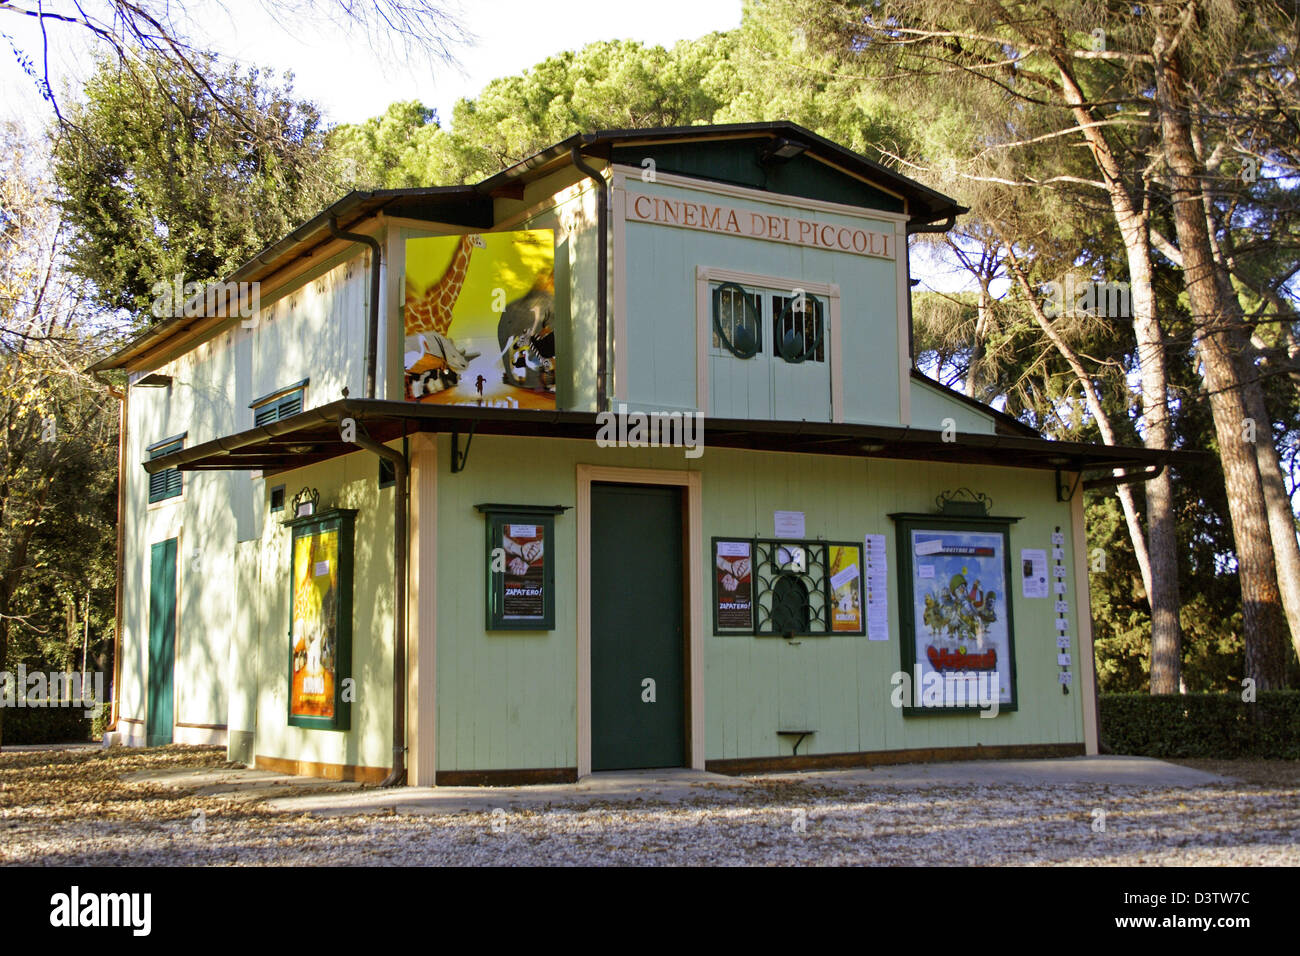 (dpa File)   The Picture Shows The Worldu0027s Smallest Cinema At Villa  Borgheseu0027s Parc In Rome, Italy, 18 December 2005. The Mini U0027Cinema Dei  Piccoliu0027 Is ...